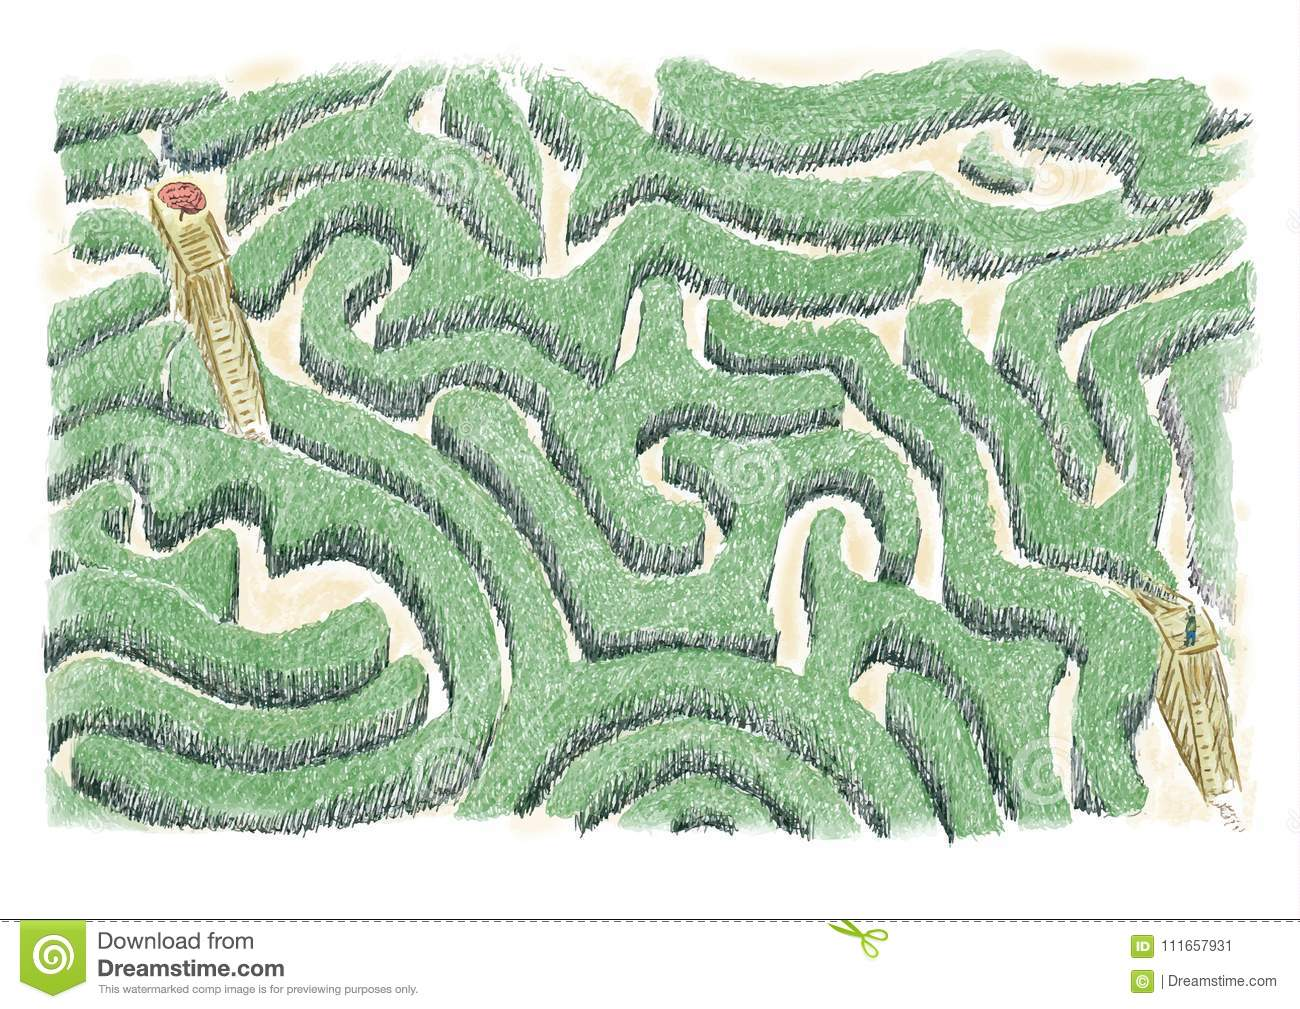 Maze of ideas.Concept of maze to be crossed to find the ideas, oneself and to check with the foreground of the brain.